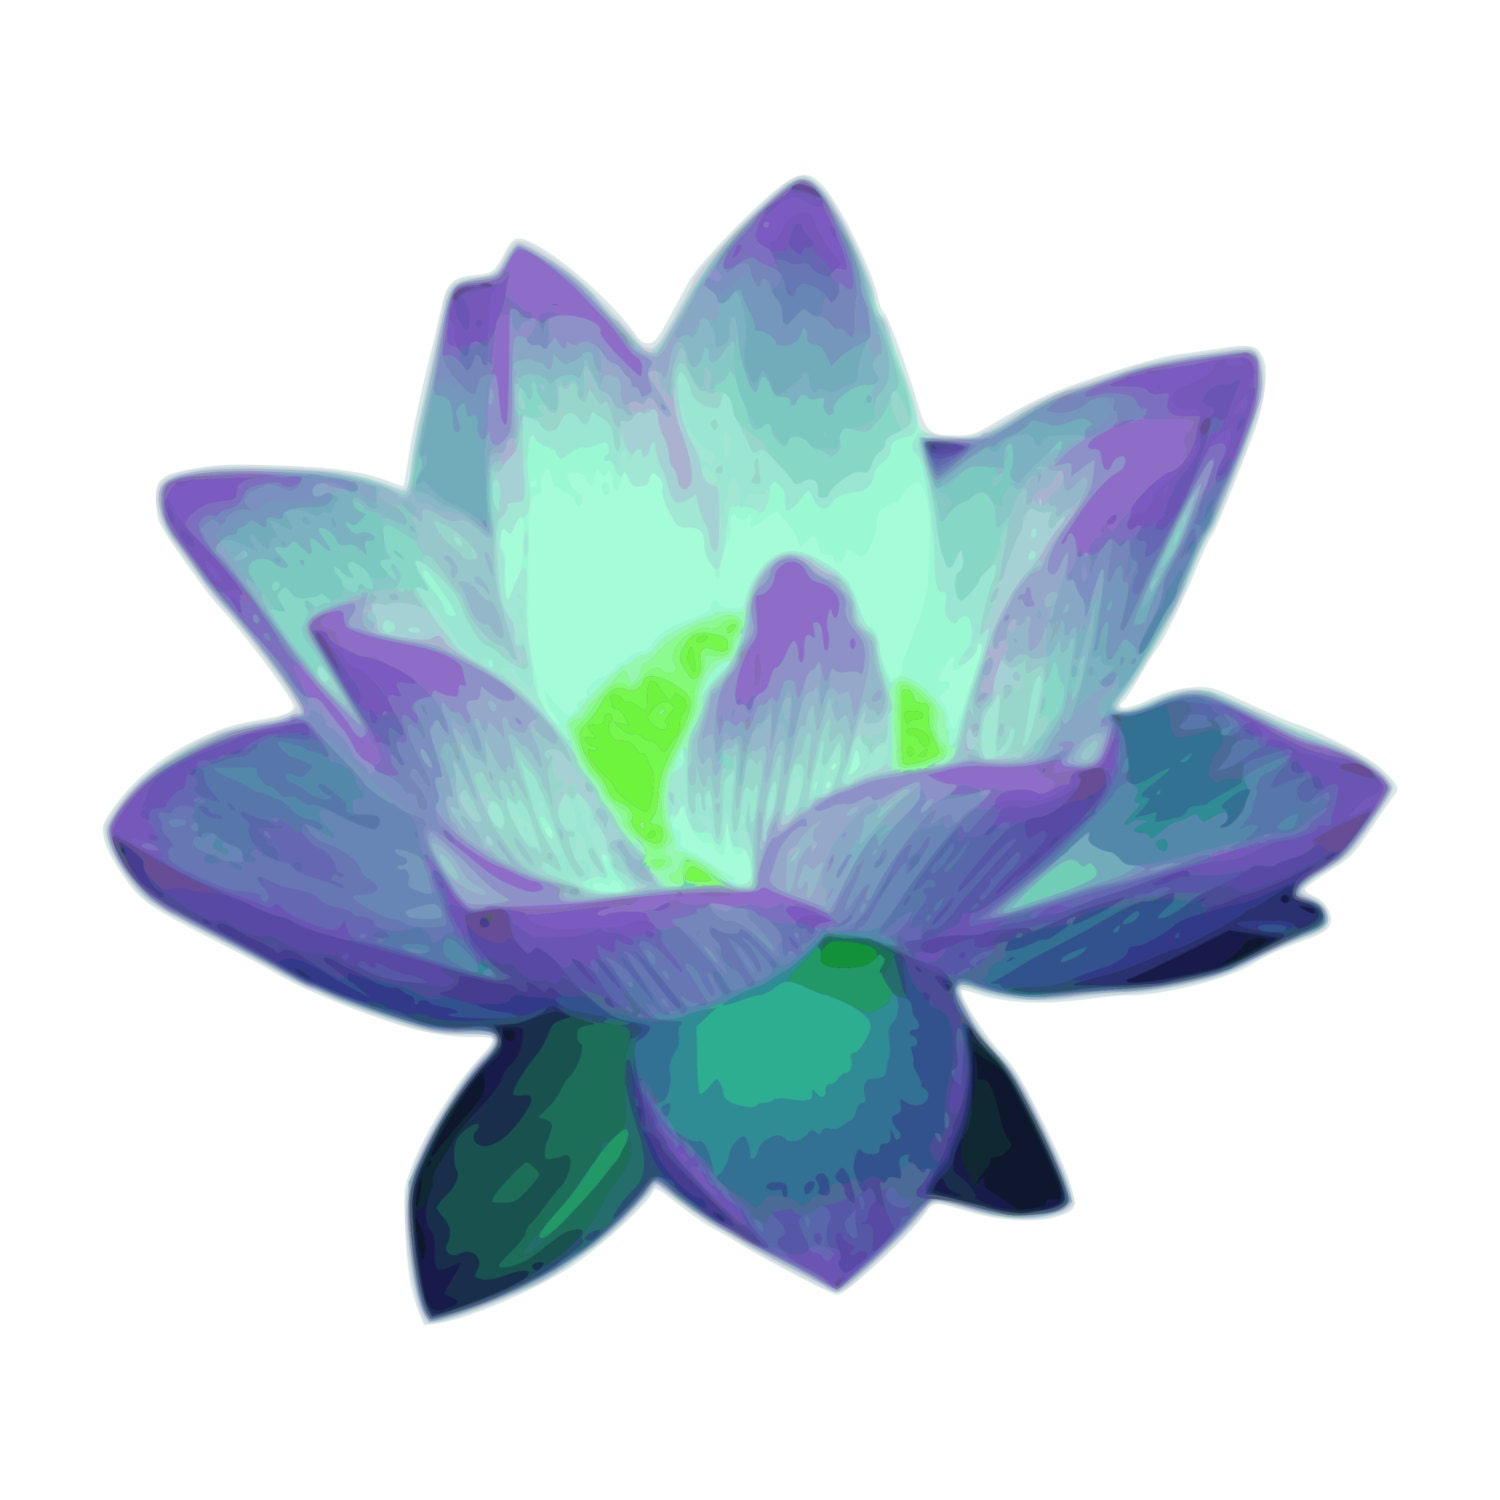 Lotus flower clip art lotus flowers lotus clipart lotus graphic this is a digital file izmirmasajfo